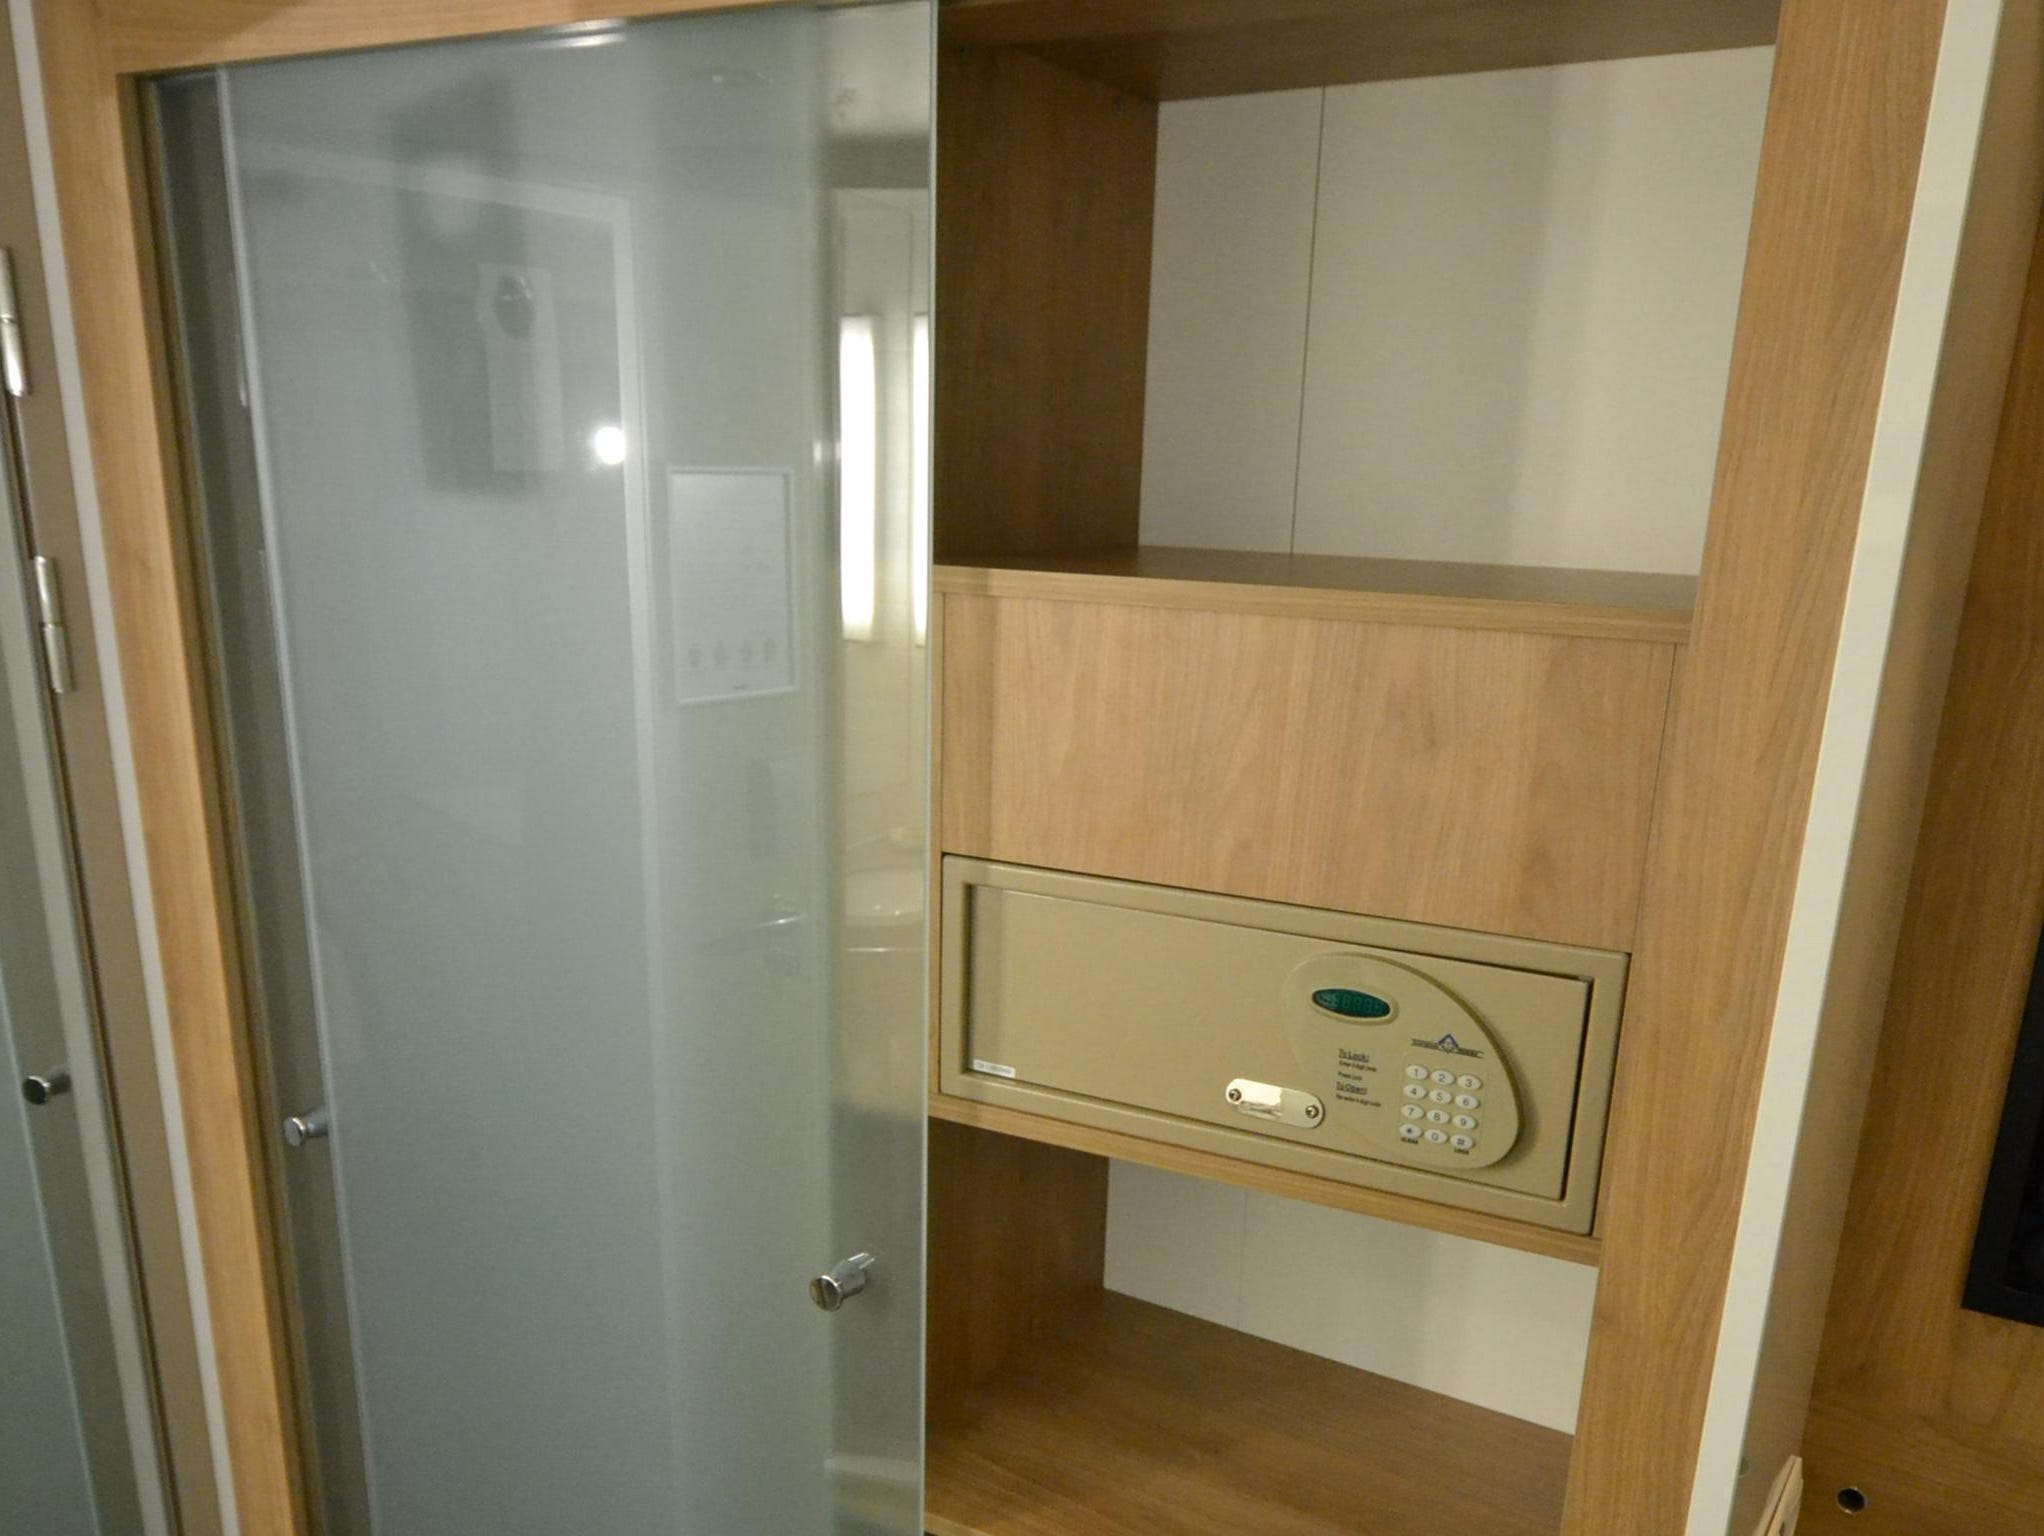 French Balcony Staterooms have wide built-in wardrobes with translucent glass doors that feature shelving and a safe on one side and space for hanging clothes on the other side.